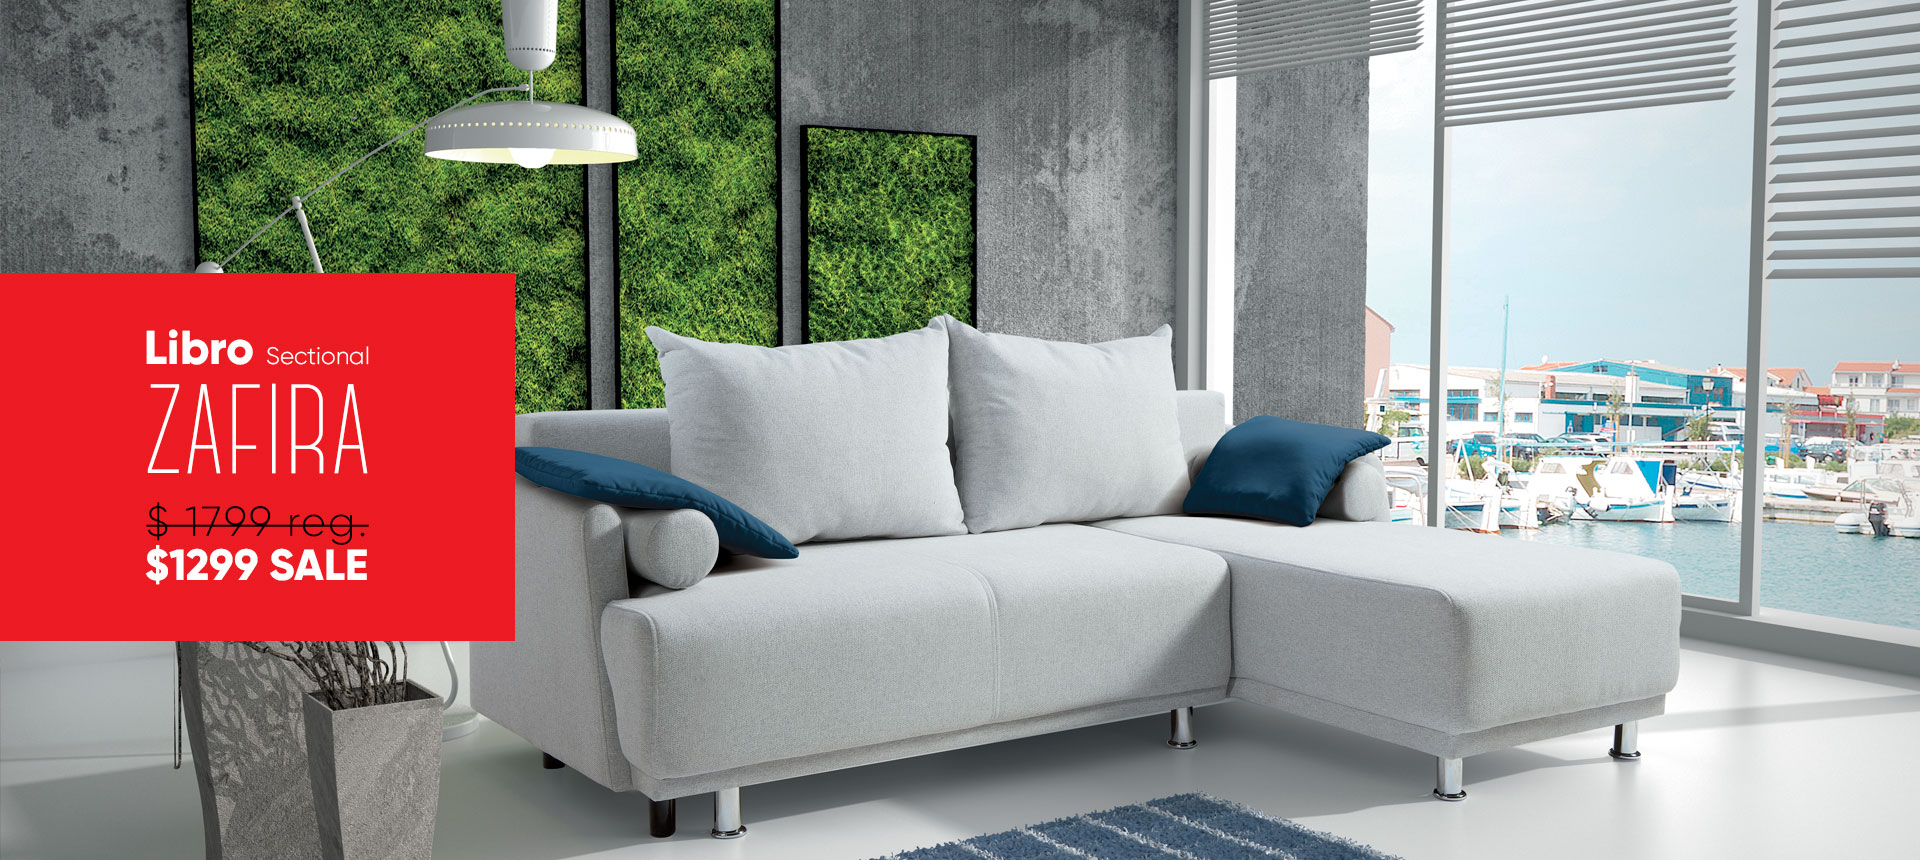 Libro Sectional Zafira 2FBAL-OTR - now on sale - Online store Smart Furniture Mississauga